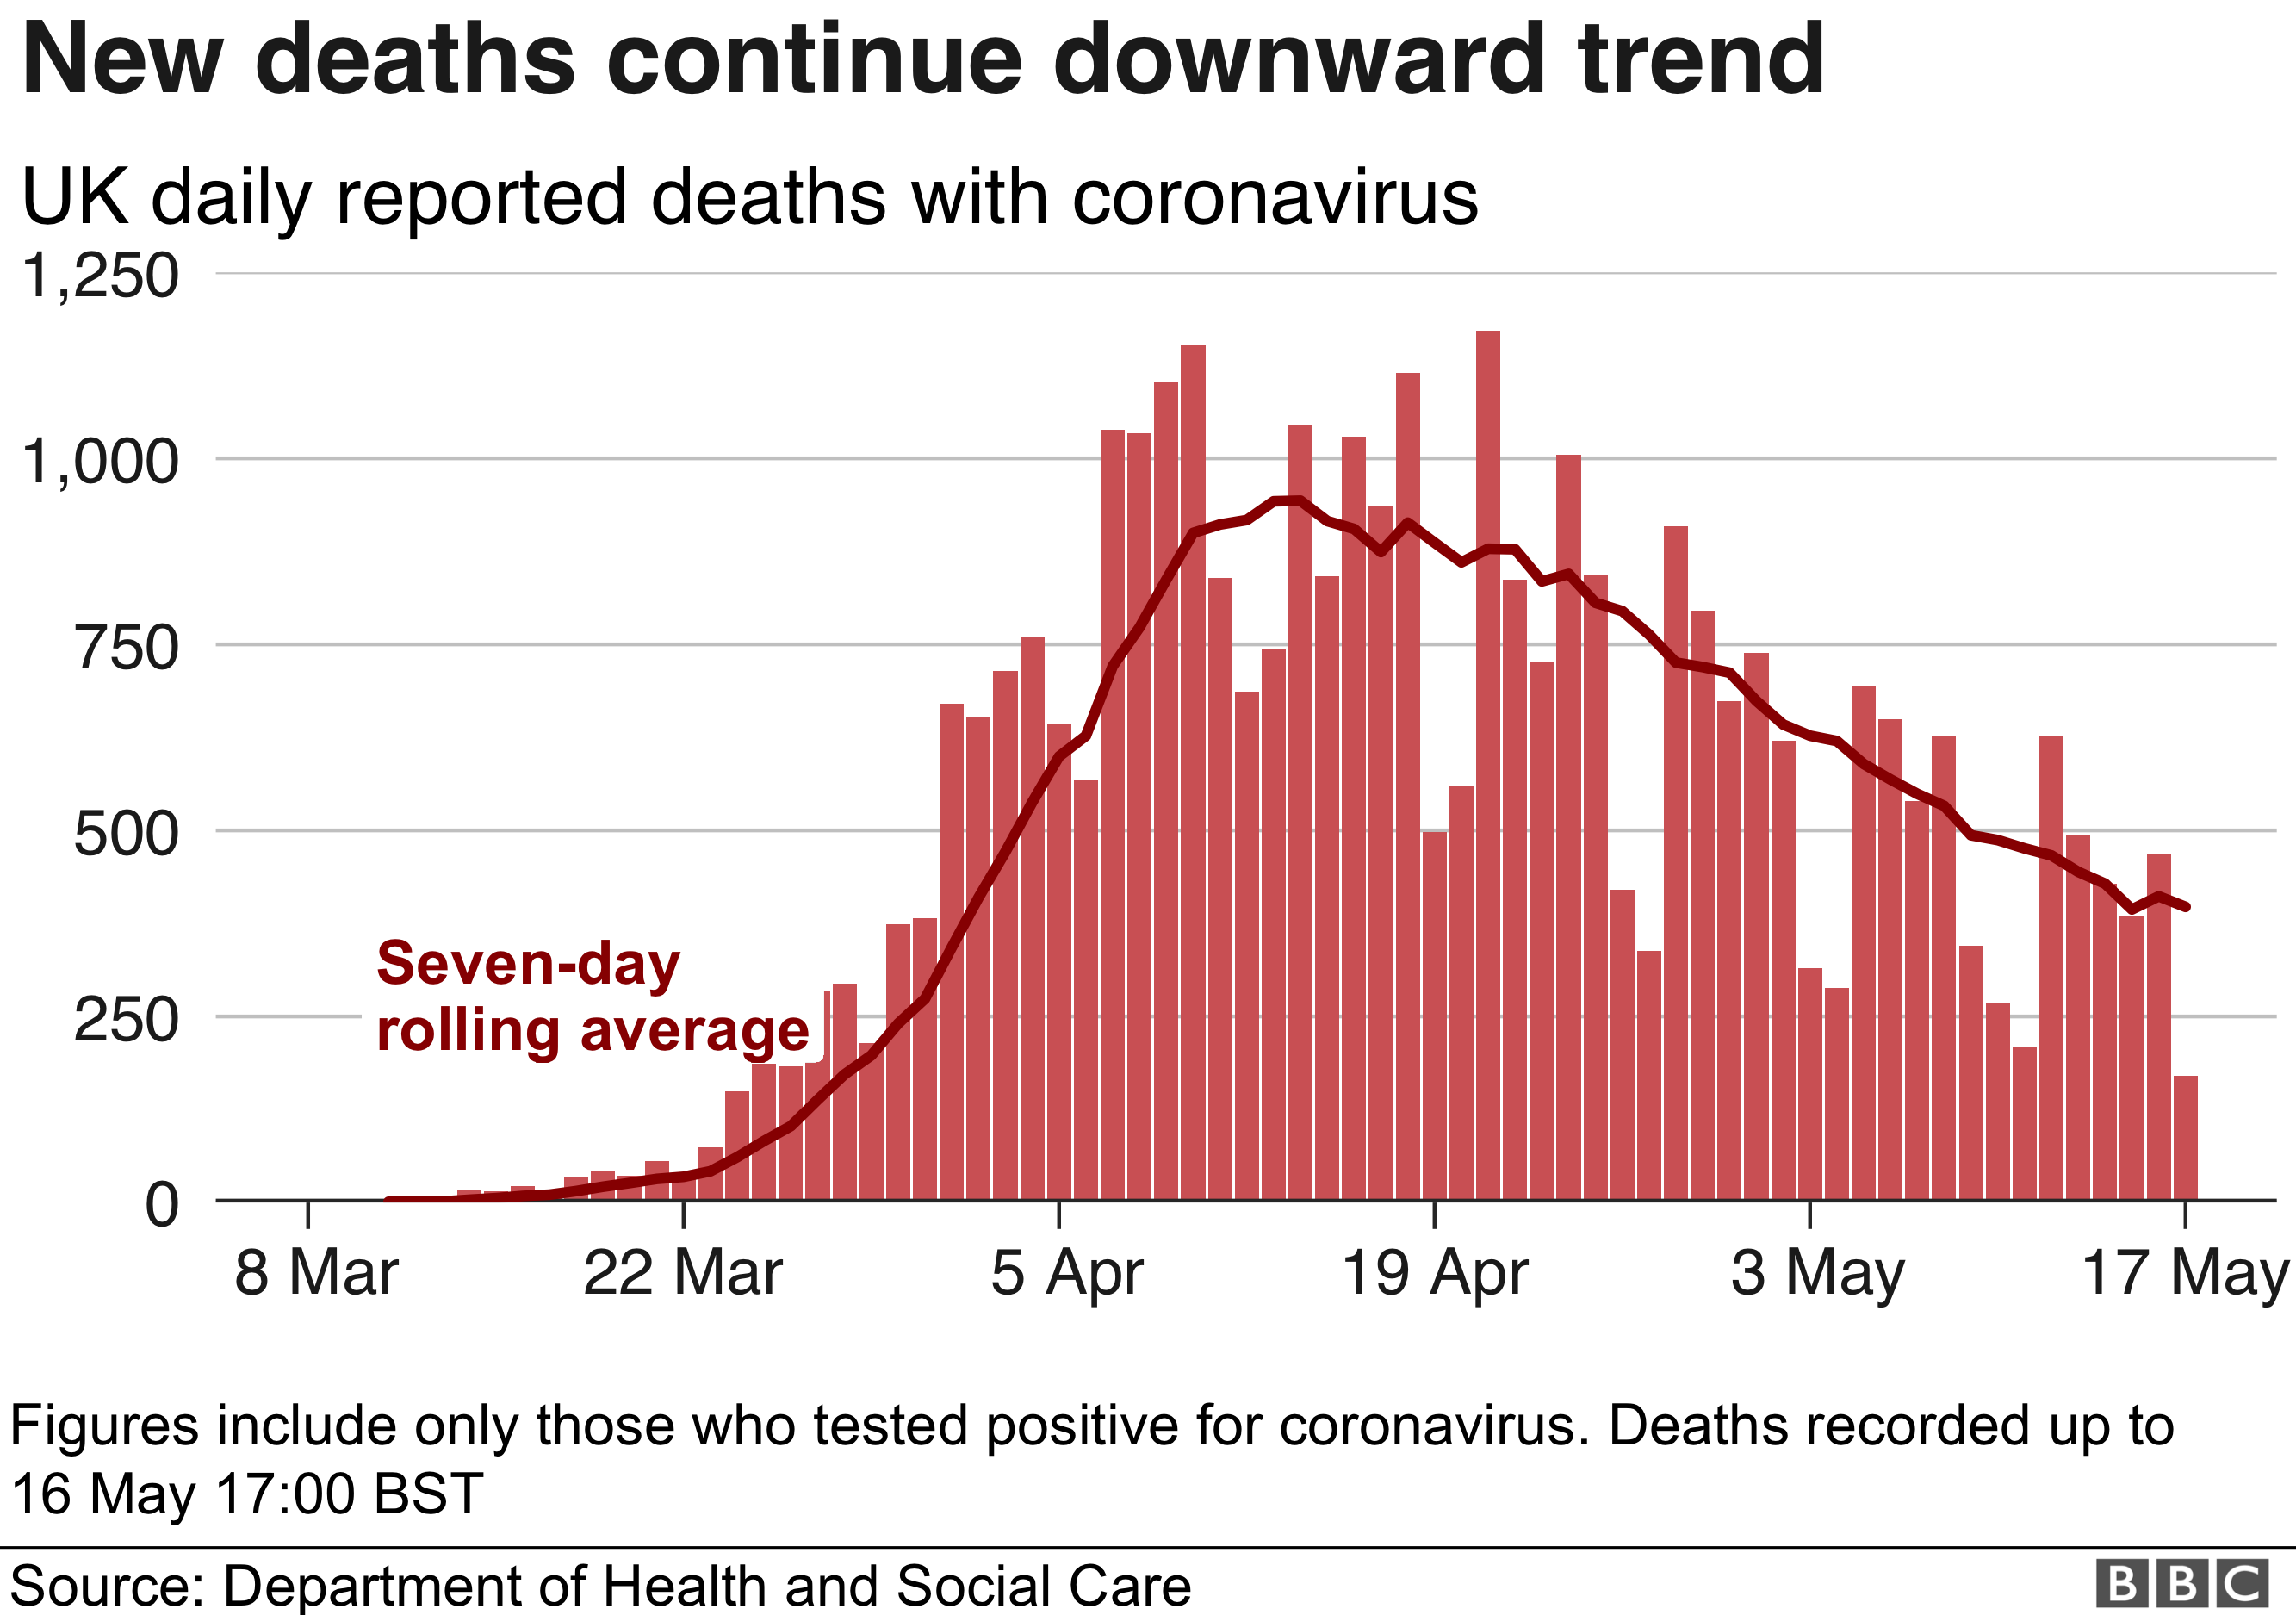 Graph showing UK daily deaths